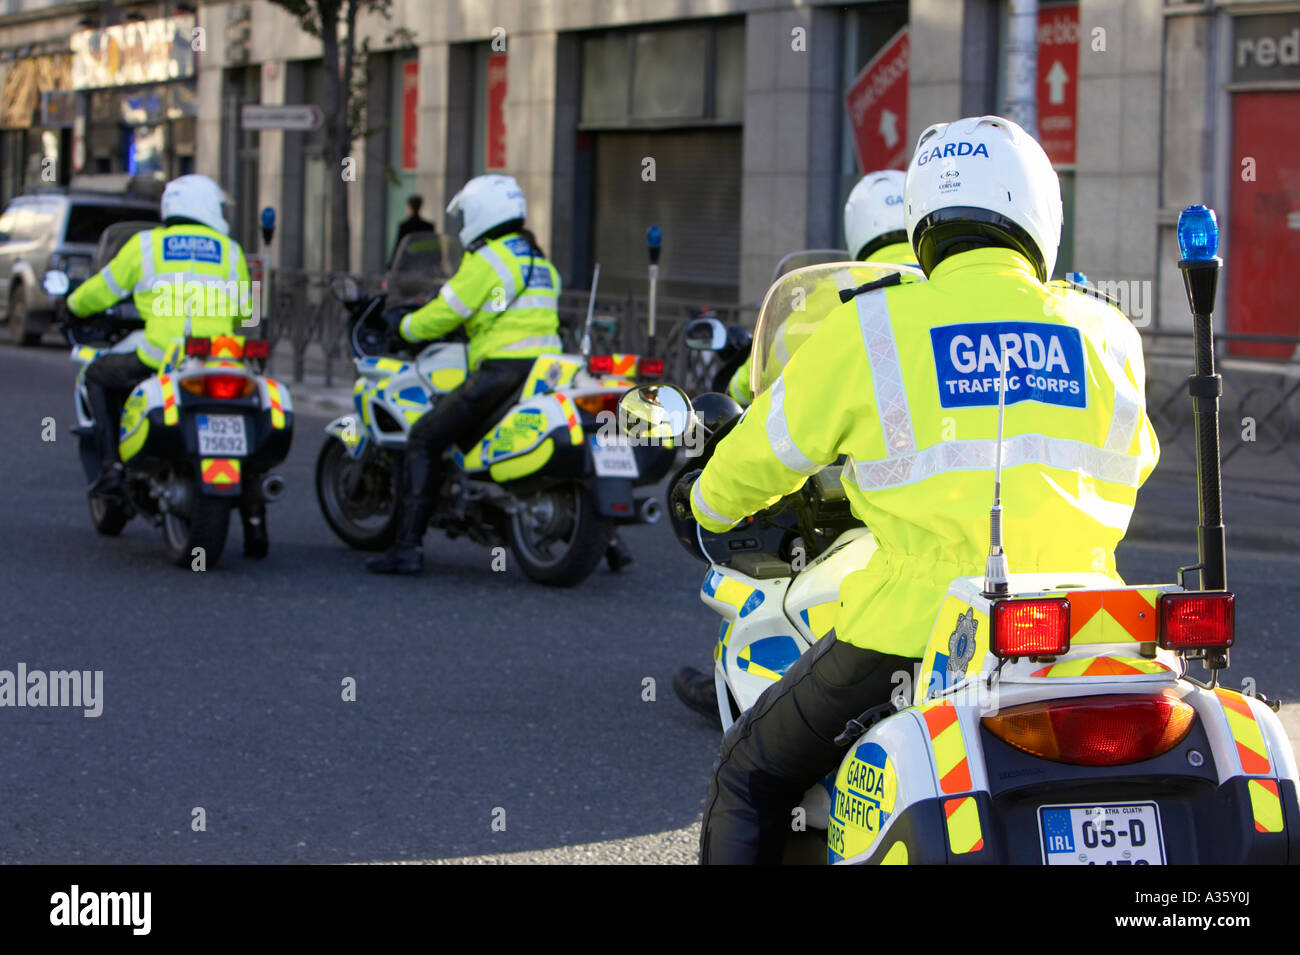 garda siochana irish police force traffic police cops on motorbikes on patrol in dublin city centre Stock Photo